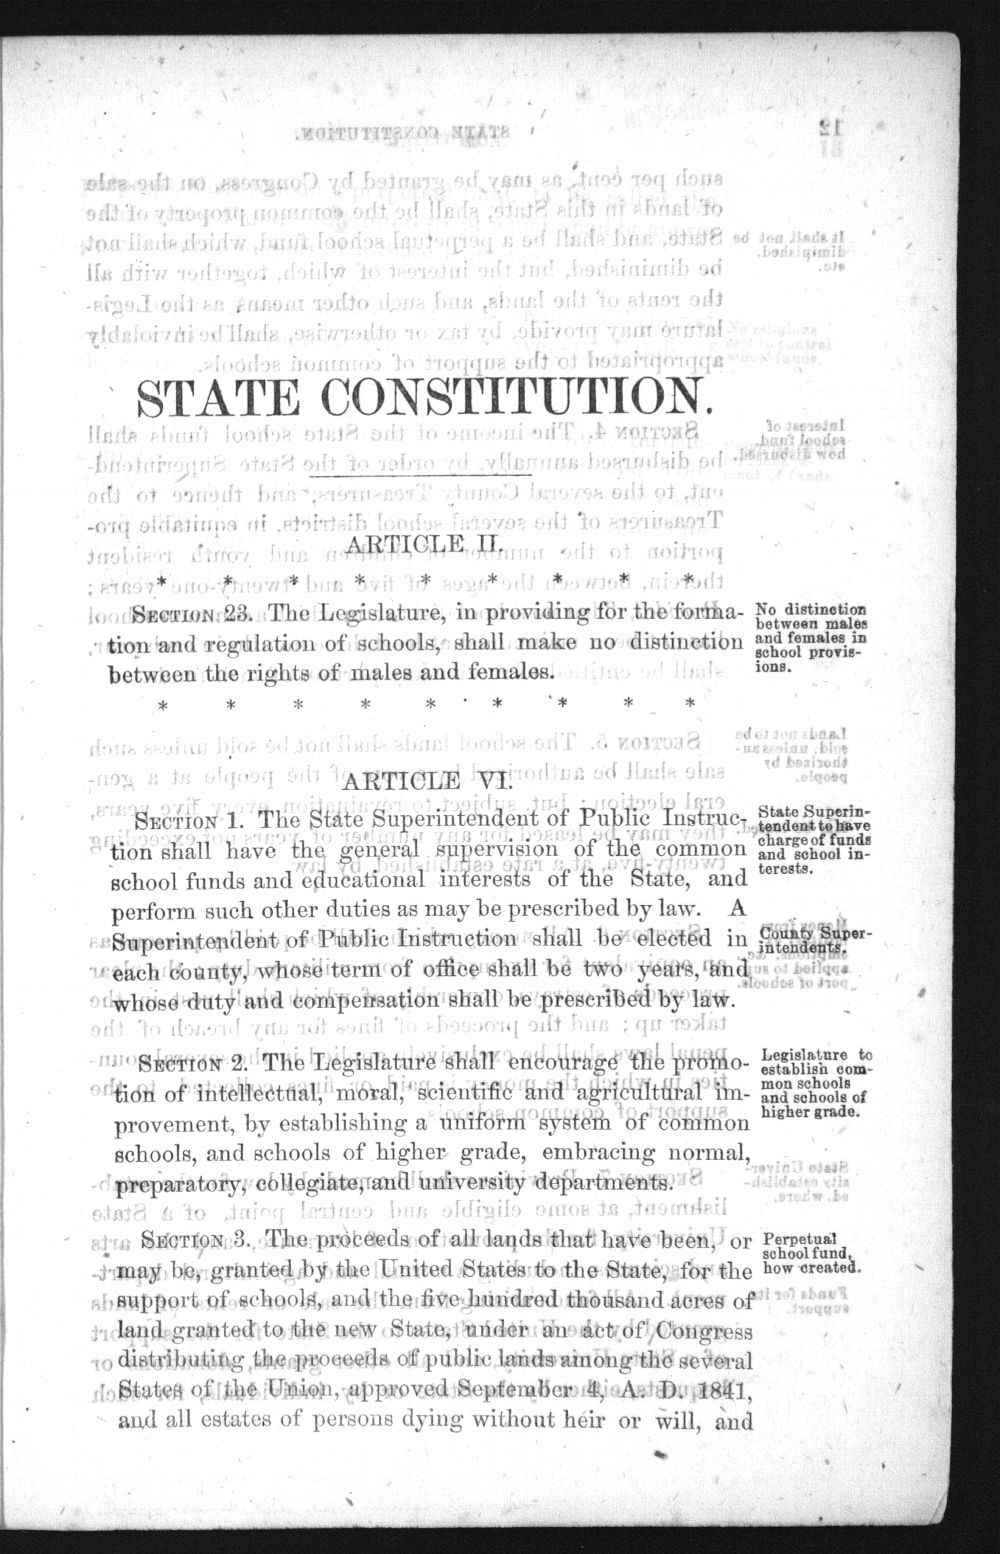 Laws and forms relating to common schools in the state of Kansas - 11